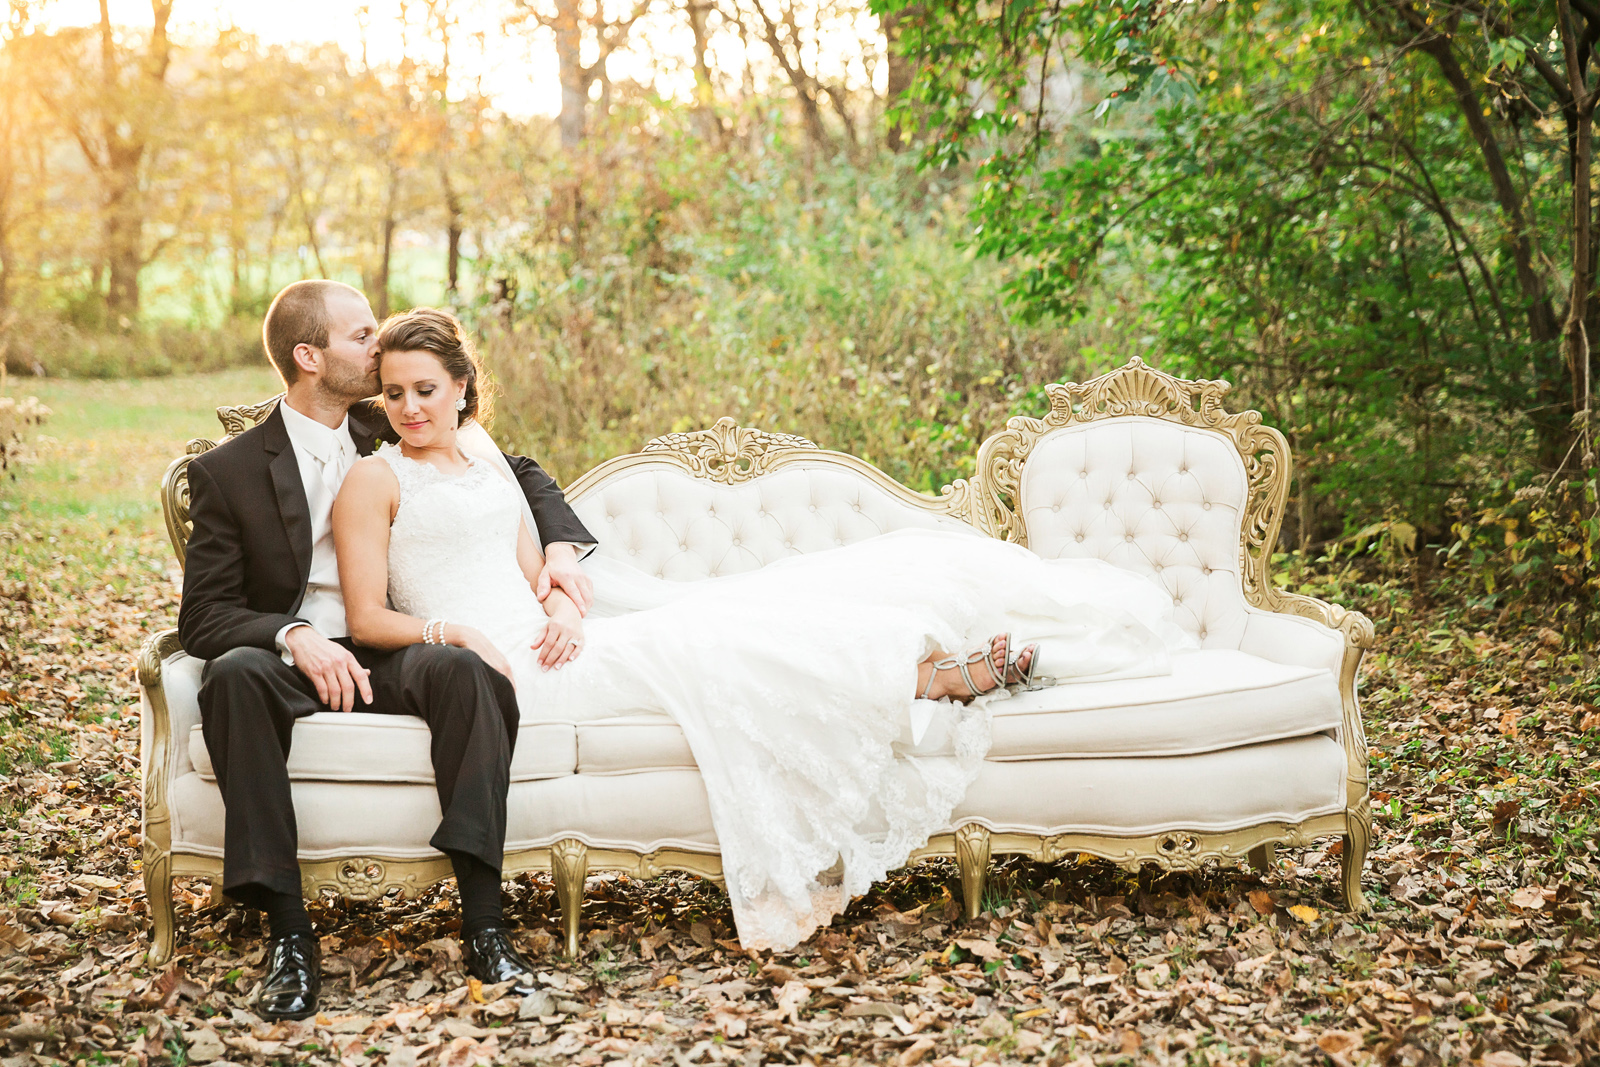 Oldani Photography-St Charles-Wentzville-St Paul-classic cars-red barn-wedding party-wedding photographer-wedding photos_20141025_17414906.jpg